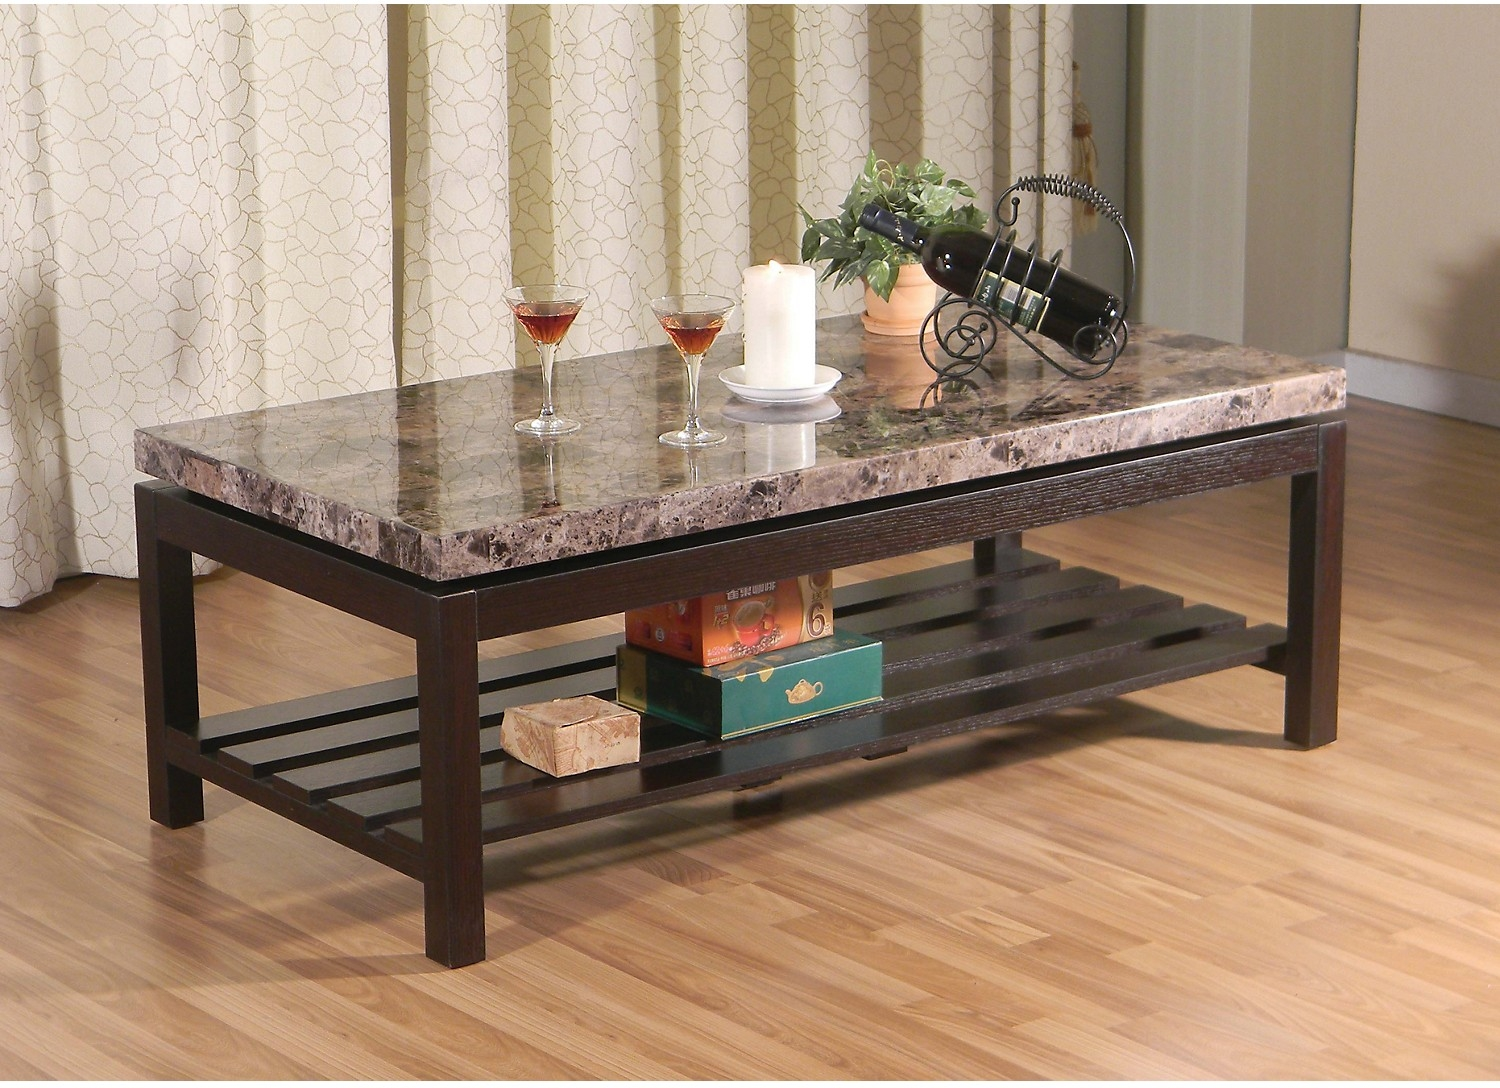 Verona faux marble coffee table marjen of chicago chicago verona faux marble coffee table geotapseo Image collections